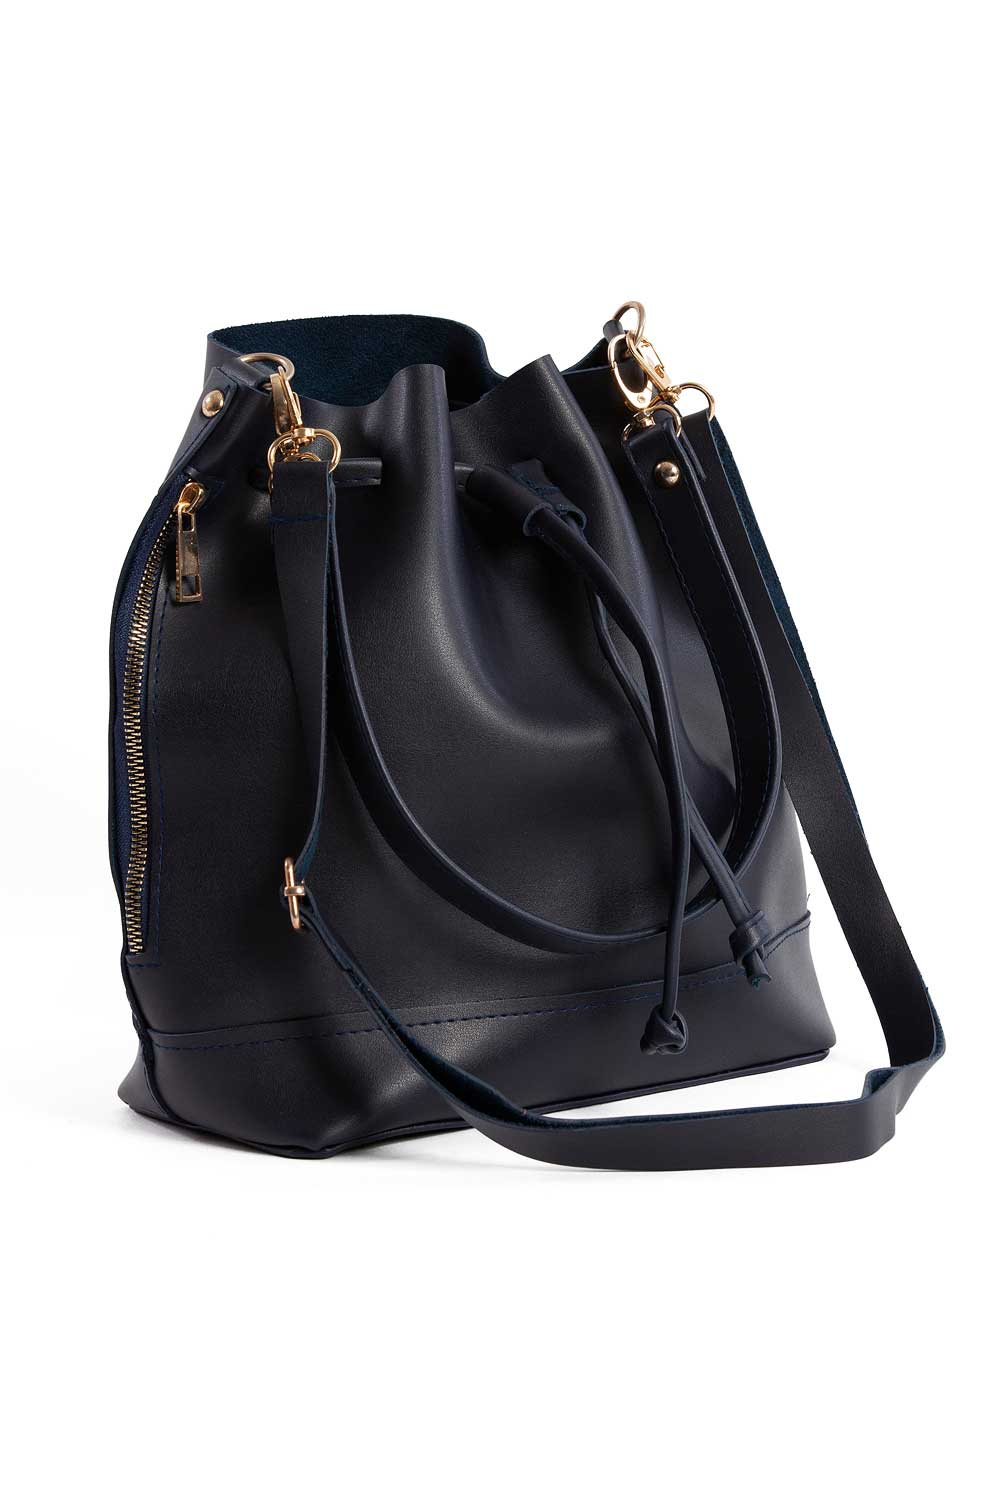 MIZALLE Drawstring Hand And Shoulder Bag (Dark Blue) (1)